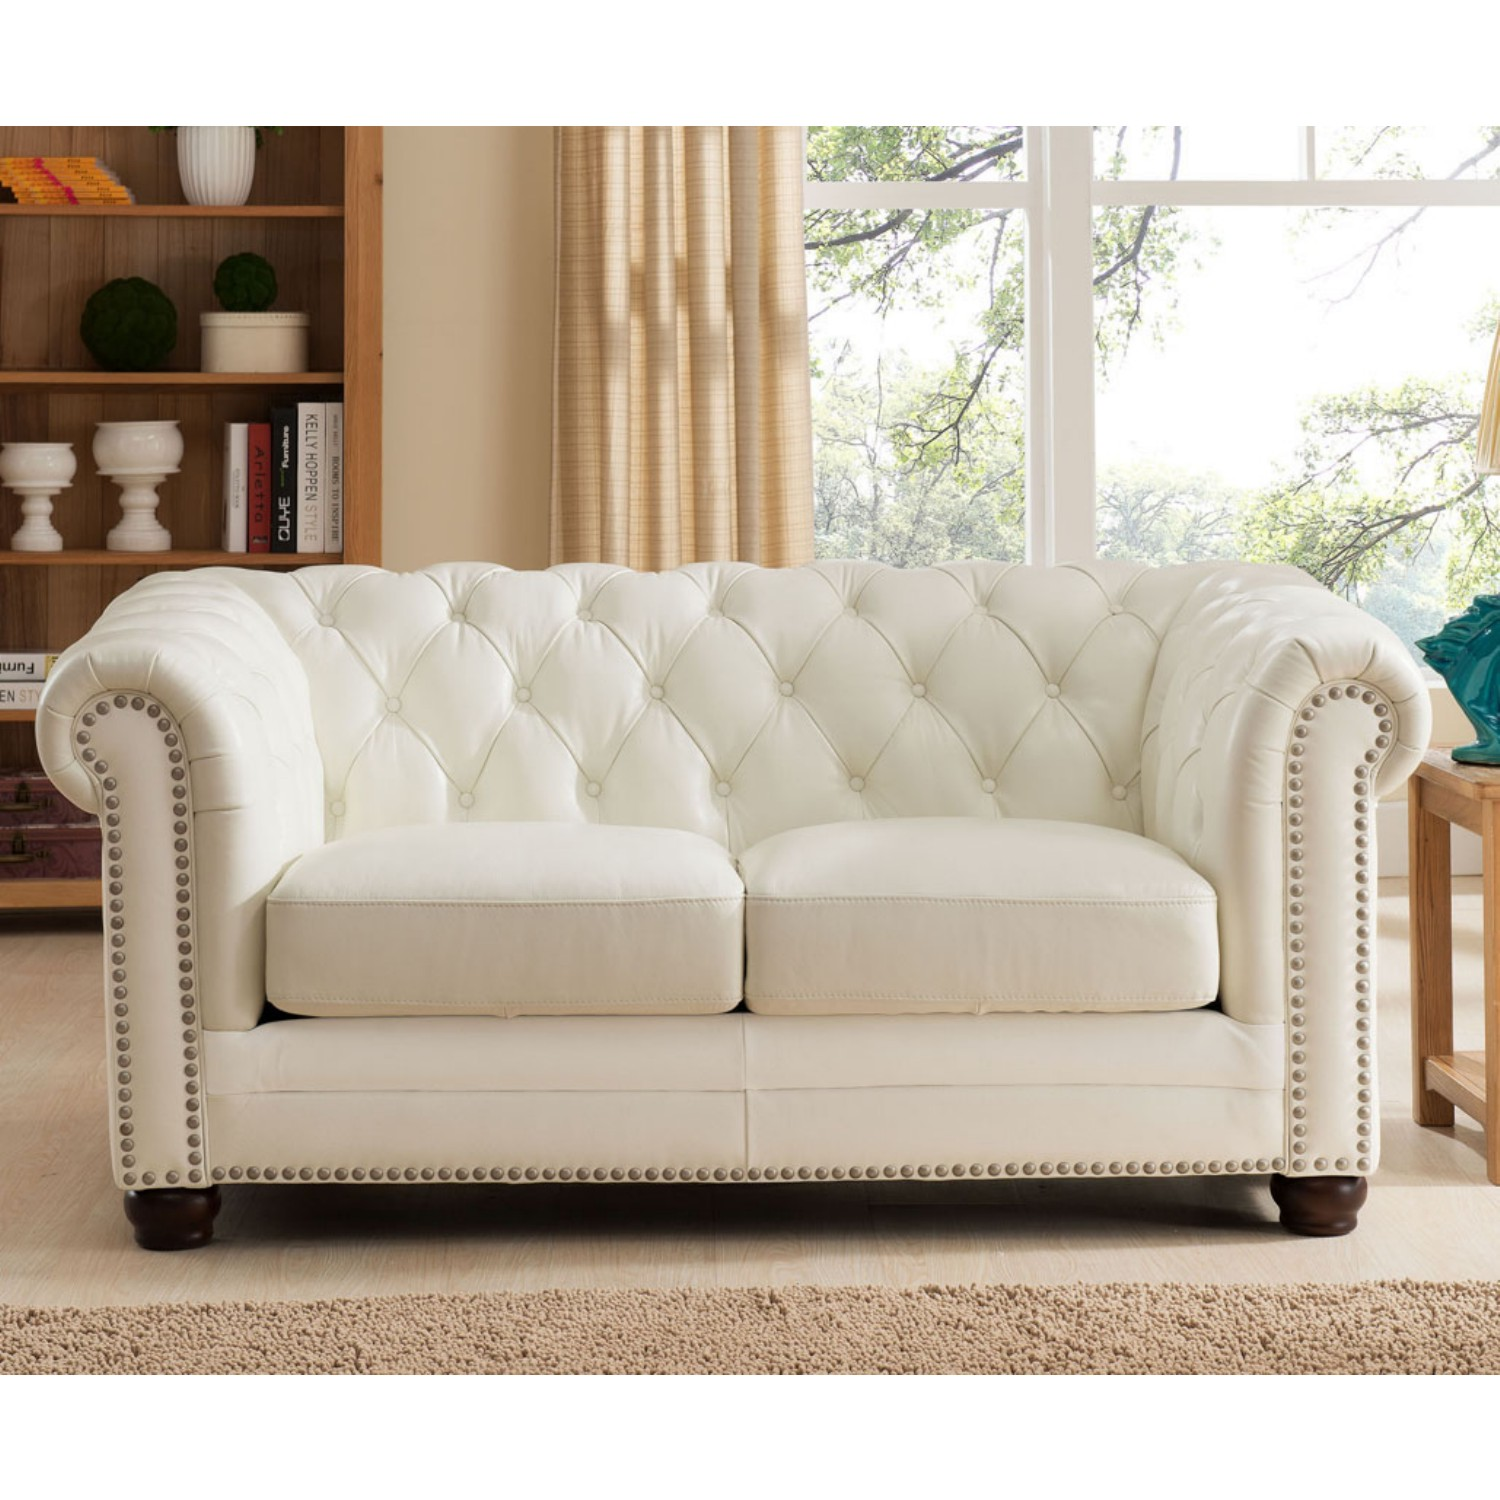 Paris Transitional Tufted White Leather Sectional Sofa: Tufted Nailhead Leather Sofa Kensington Hill Chesterfield